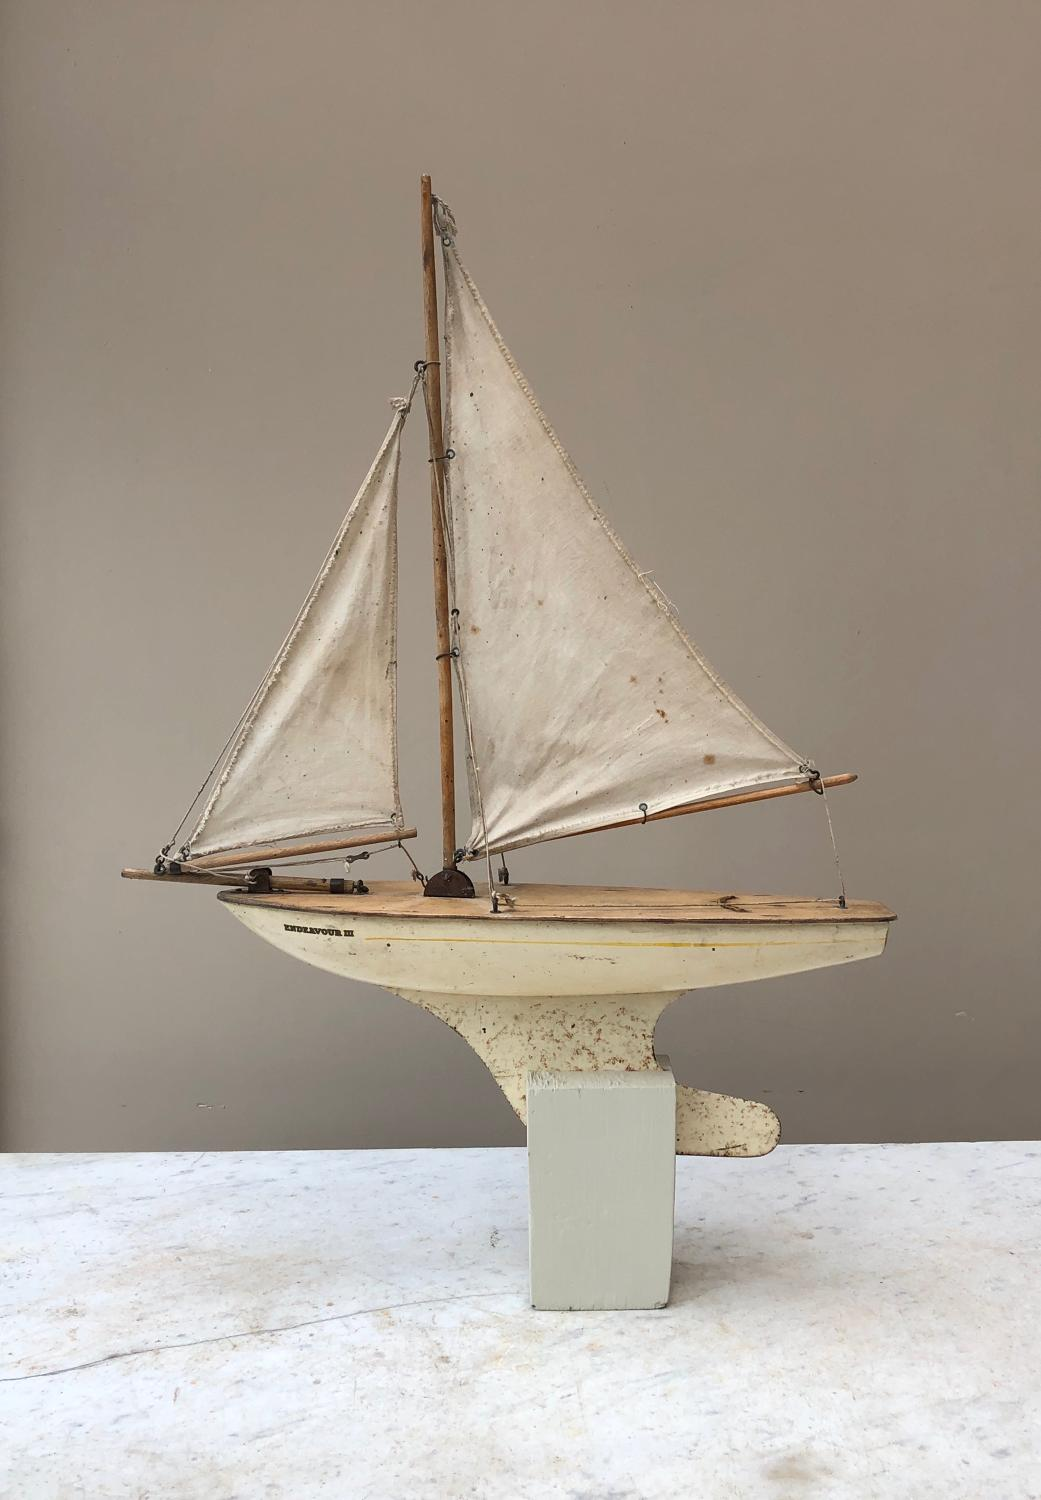 Antique Pond Yacht - Endeavour III